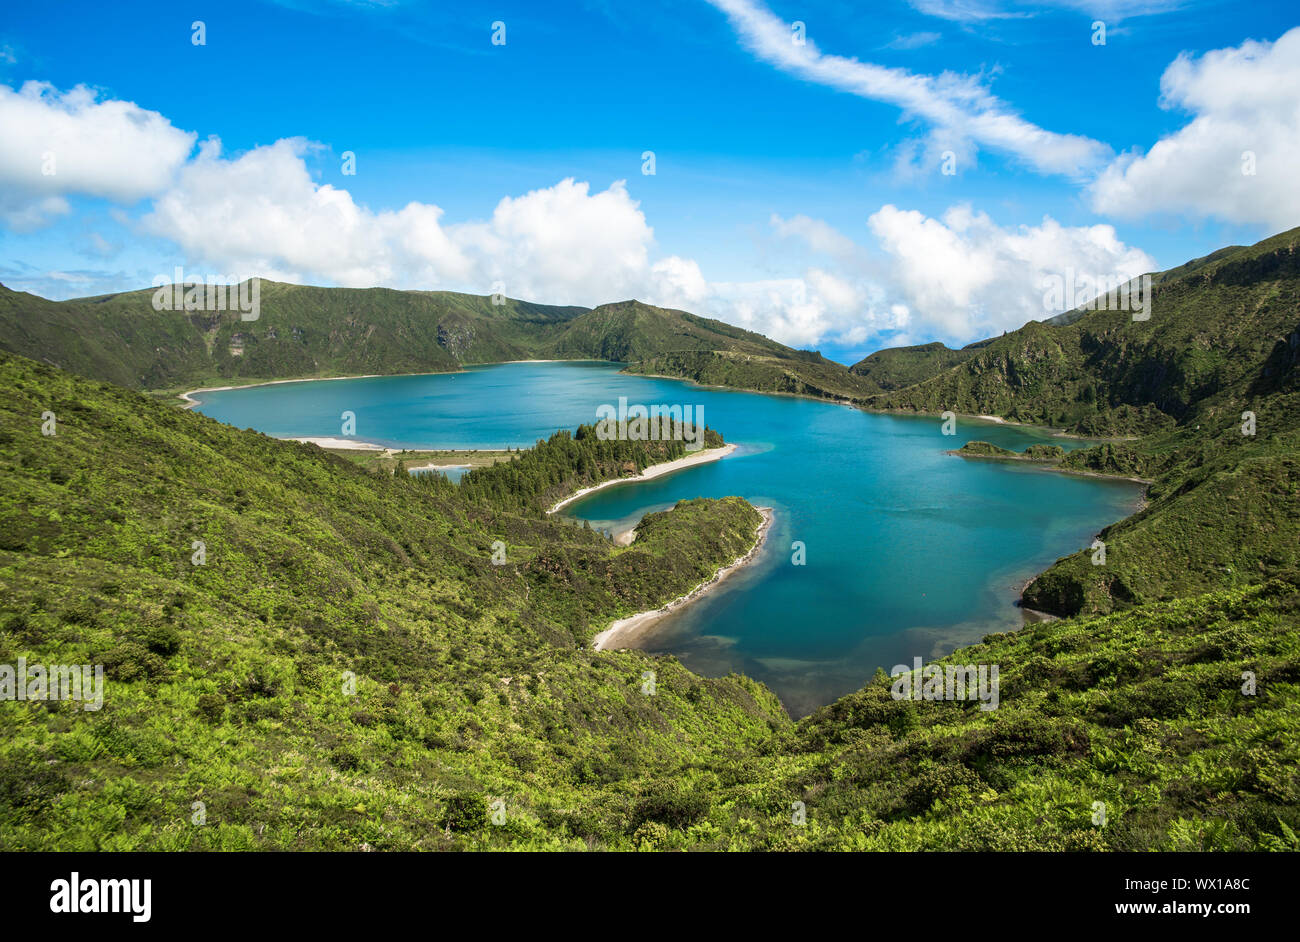 Panoramic view of Fogo lake in Sao Miguel Island, Azores, Portugal Stock Photo